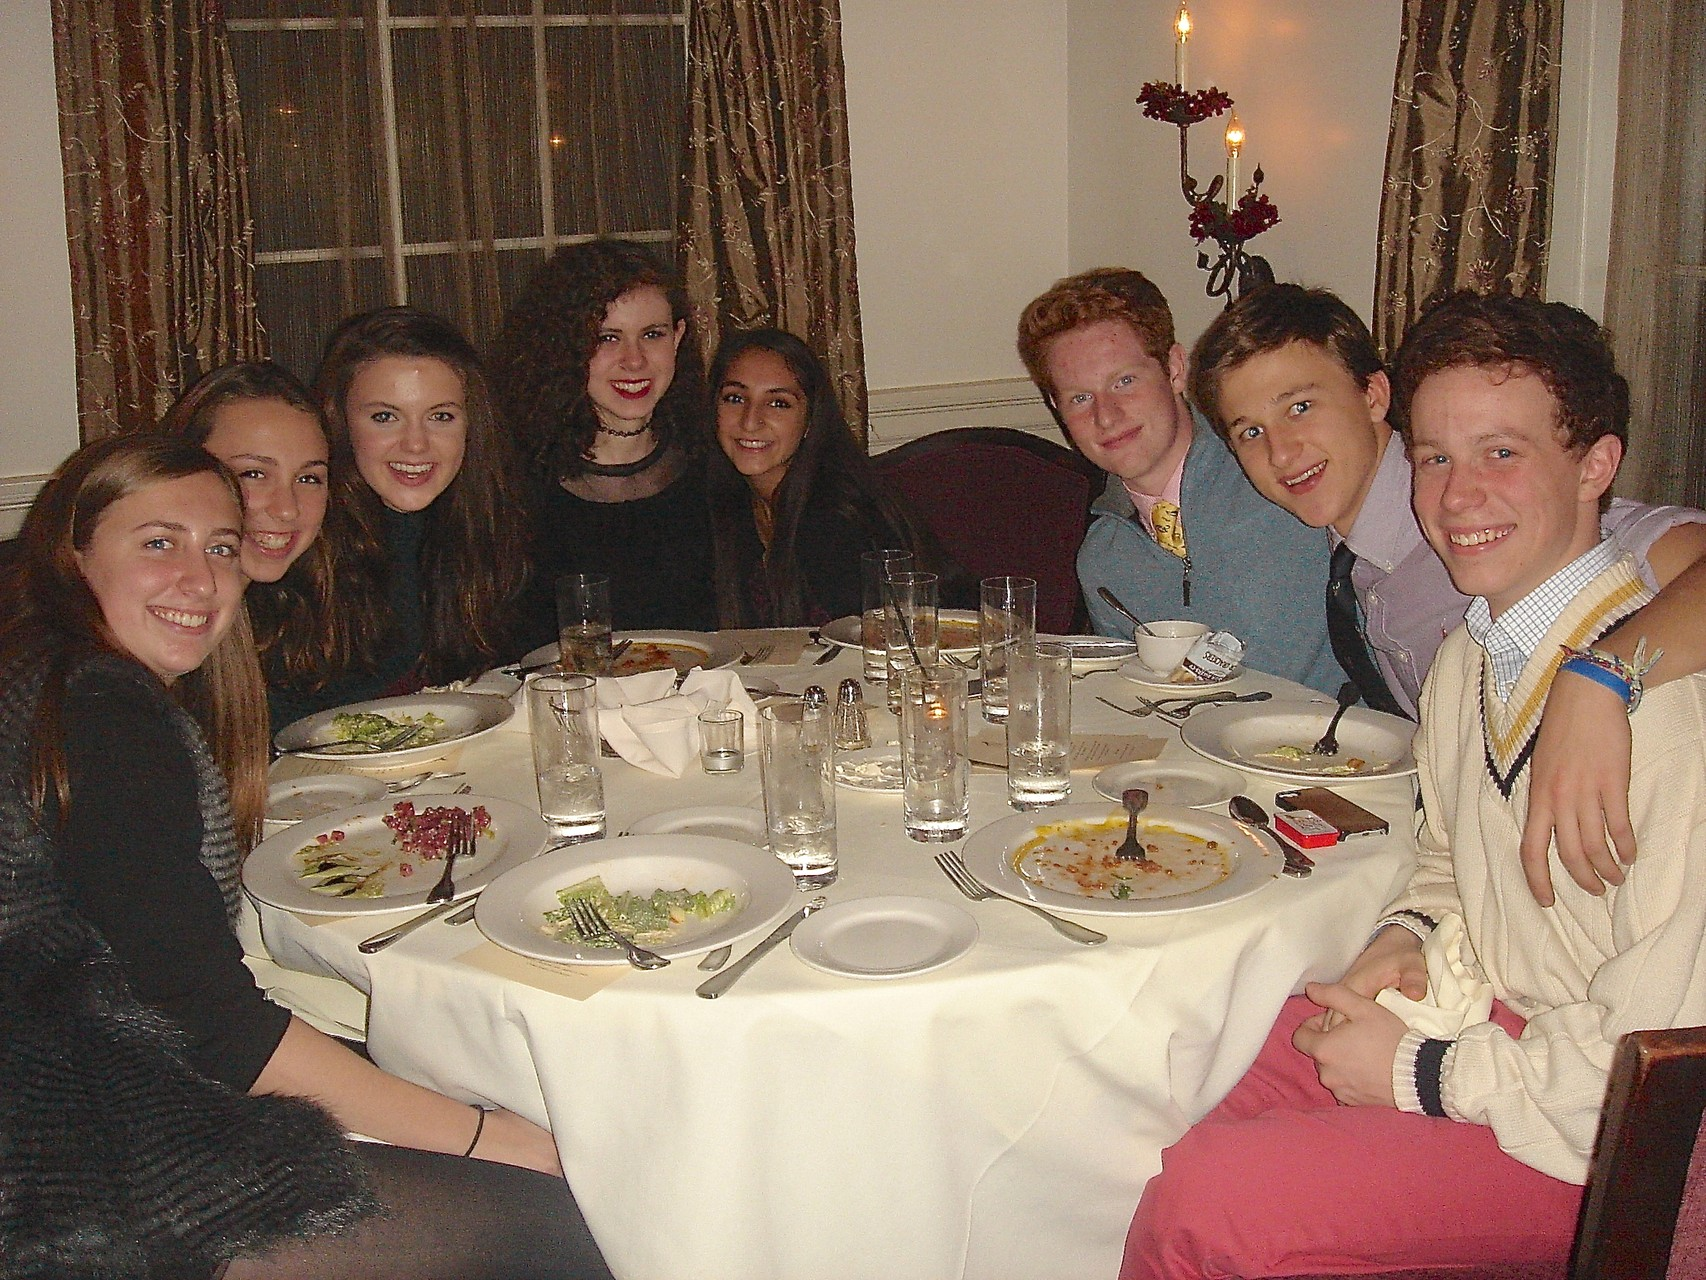 Emma, Gabby, Kate, Erin, Noah's girlfriend, Noah, Jack and Liam Kagel